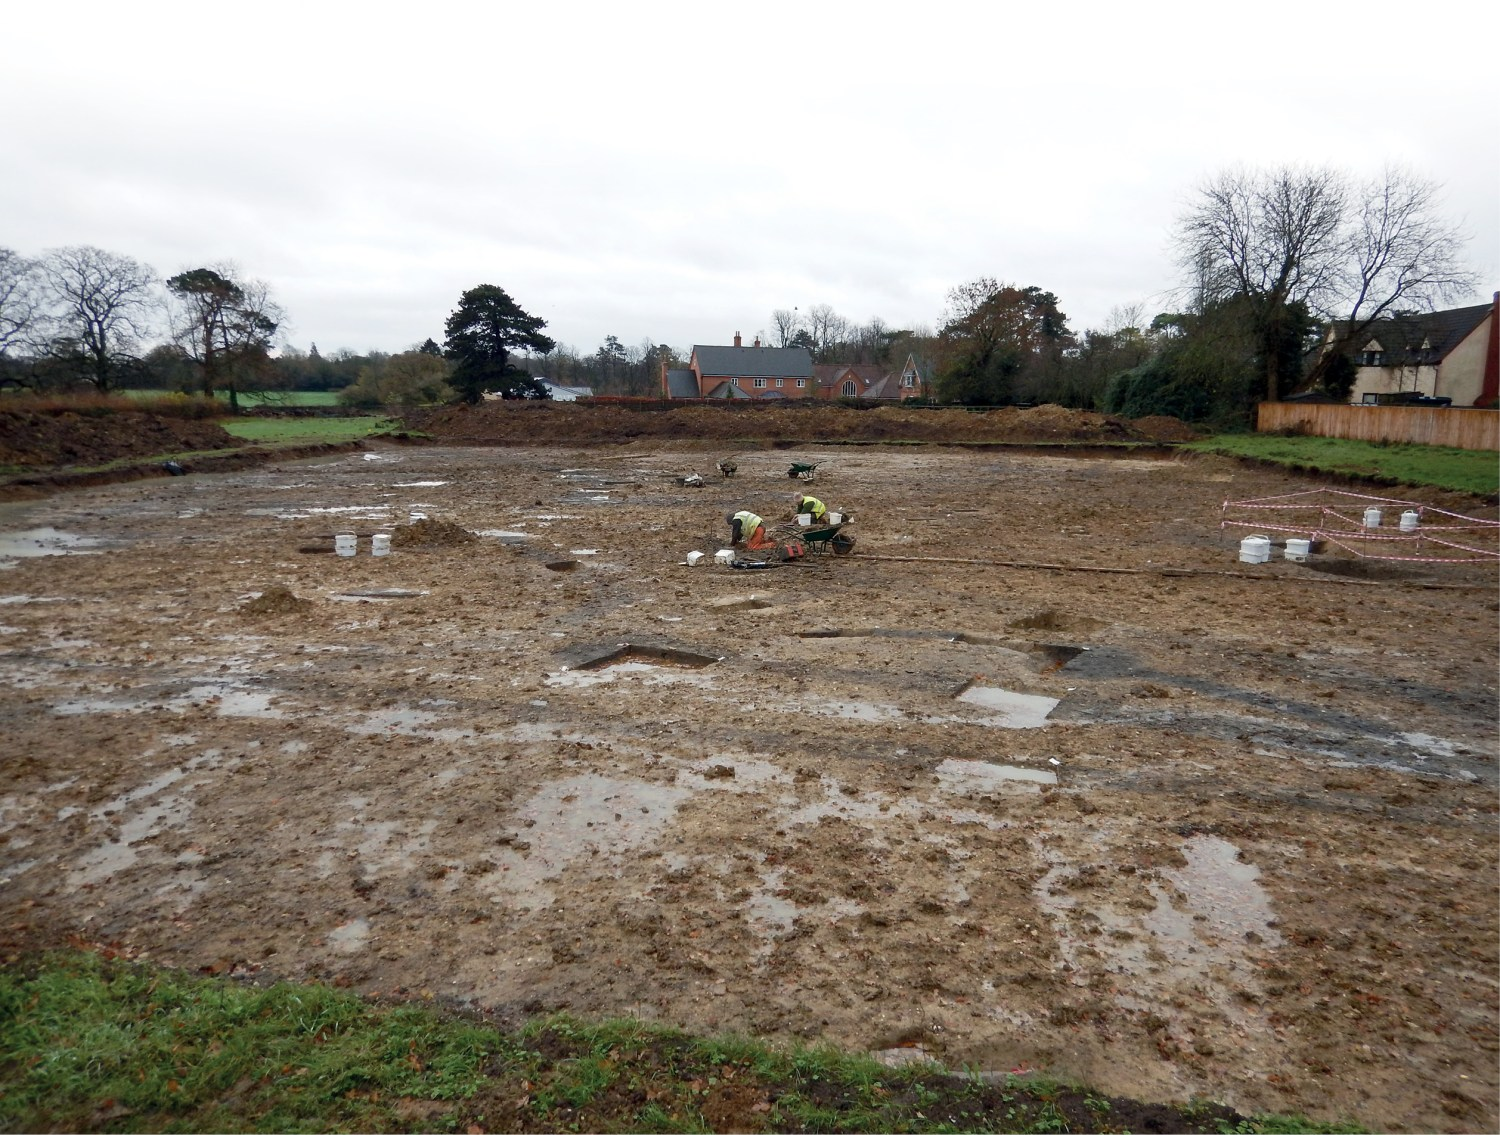 OPPOSITE Overlooking the remains of an Anarchy-period smithy excavated by Headland Archaeology. Once a vital asset to Cheveley's 12th-century villagers, today its outline is preserved through foundation trenches and post-holes.